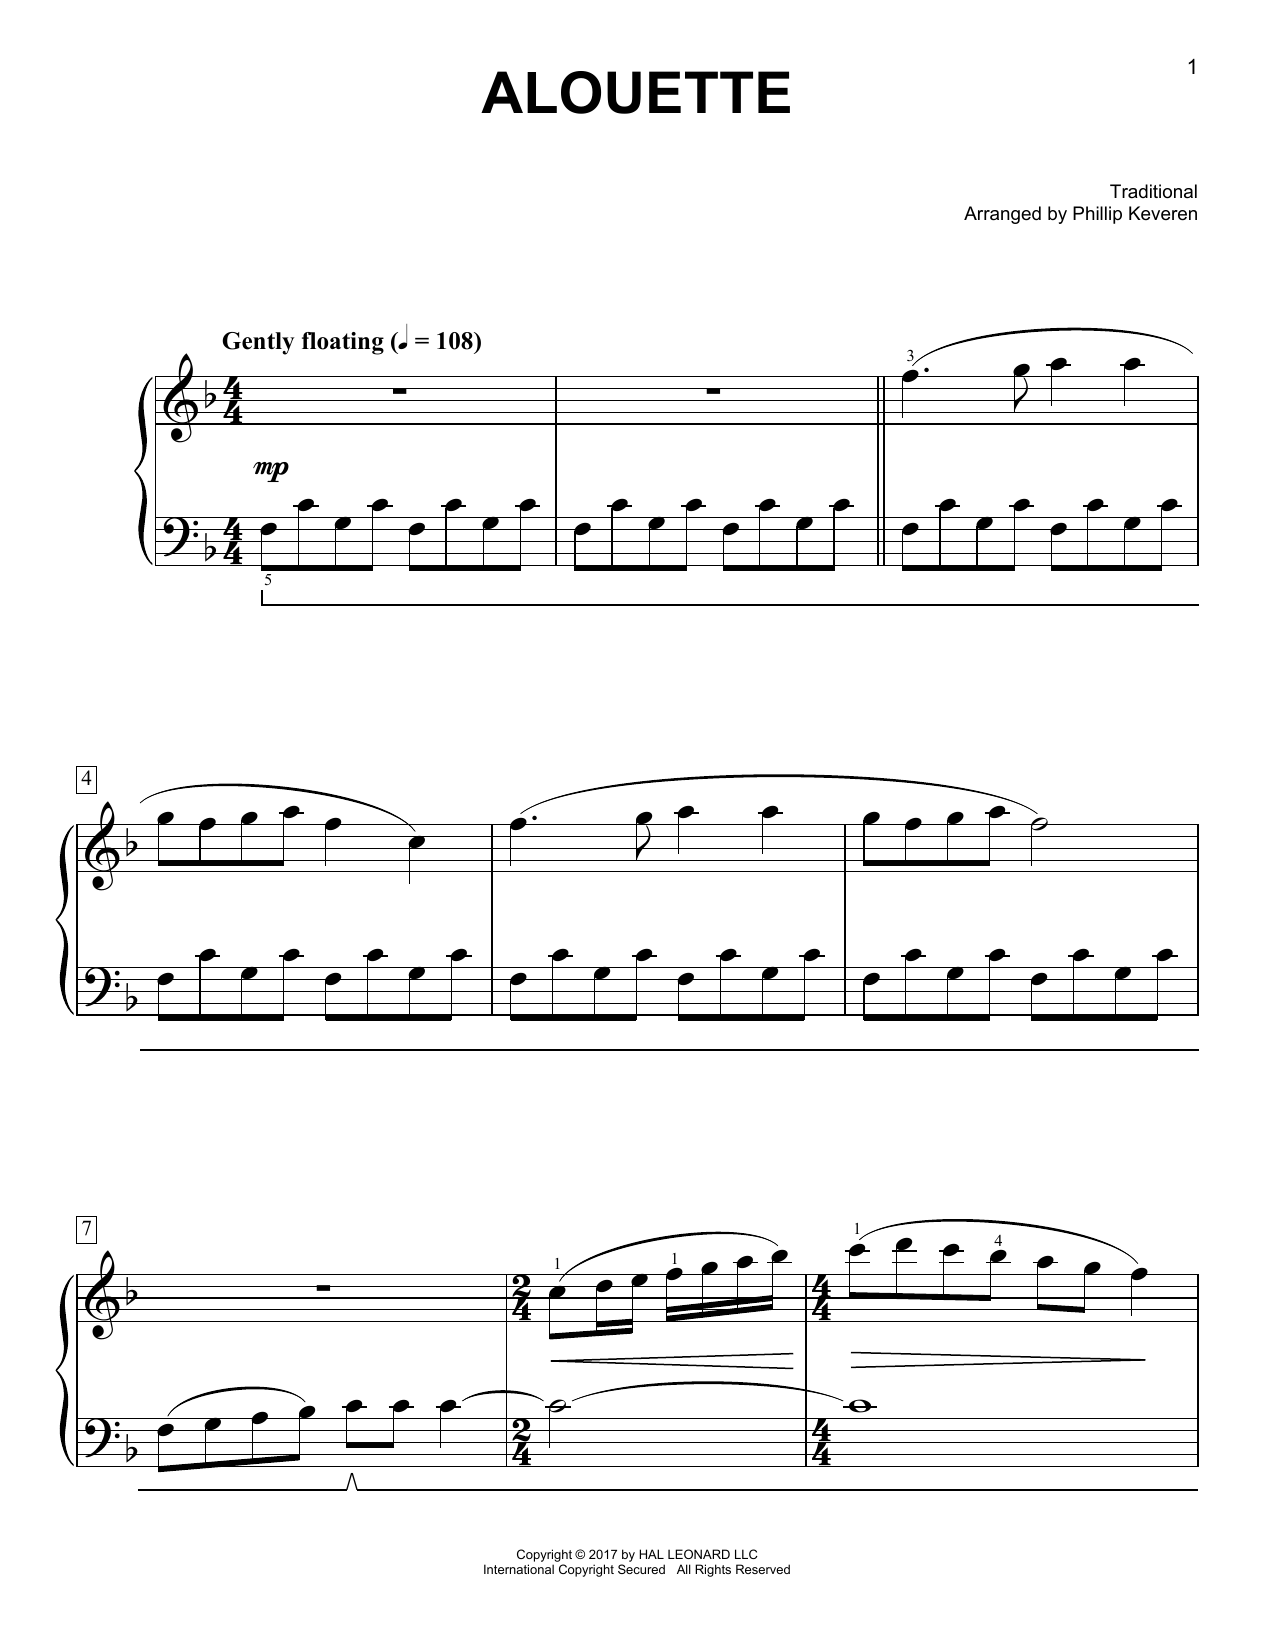 Traditional Alouette [Classical version] (arr. Phillip Keveren) sheet music notes and chords. Download Printable PDF.